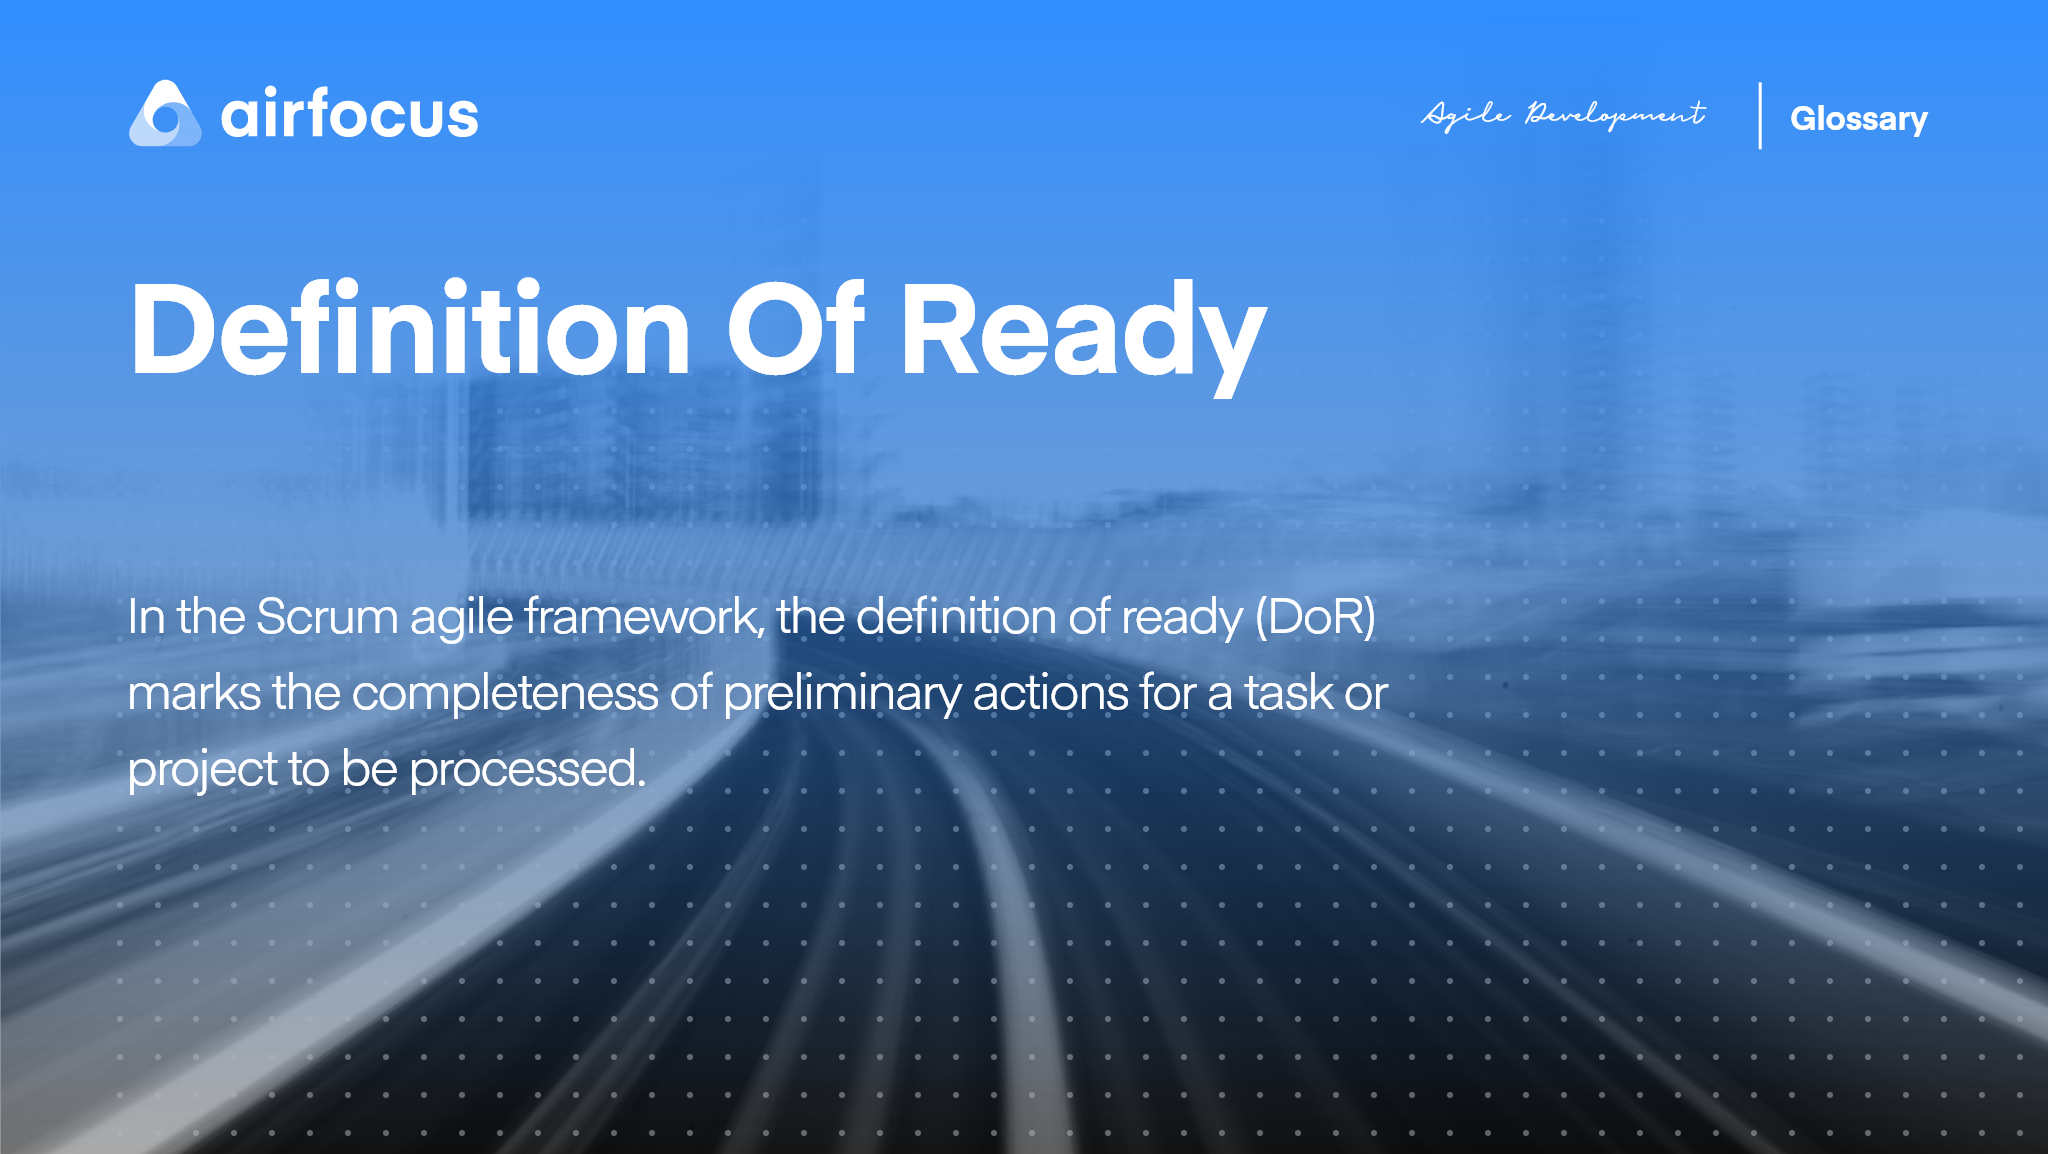 What Is the Definition of Ready In the Scrum Agile Framework